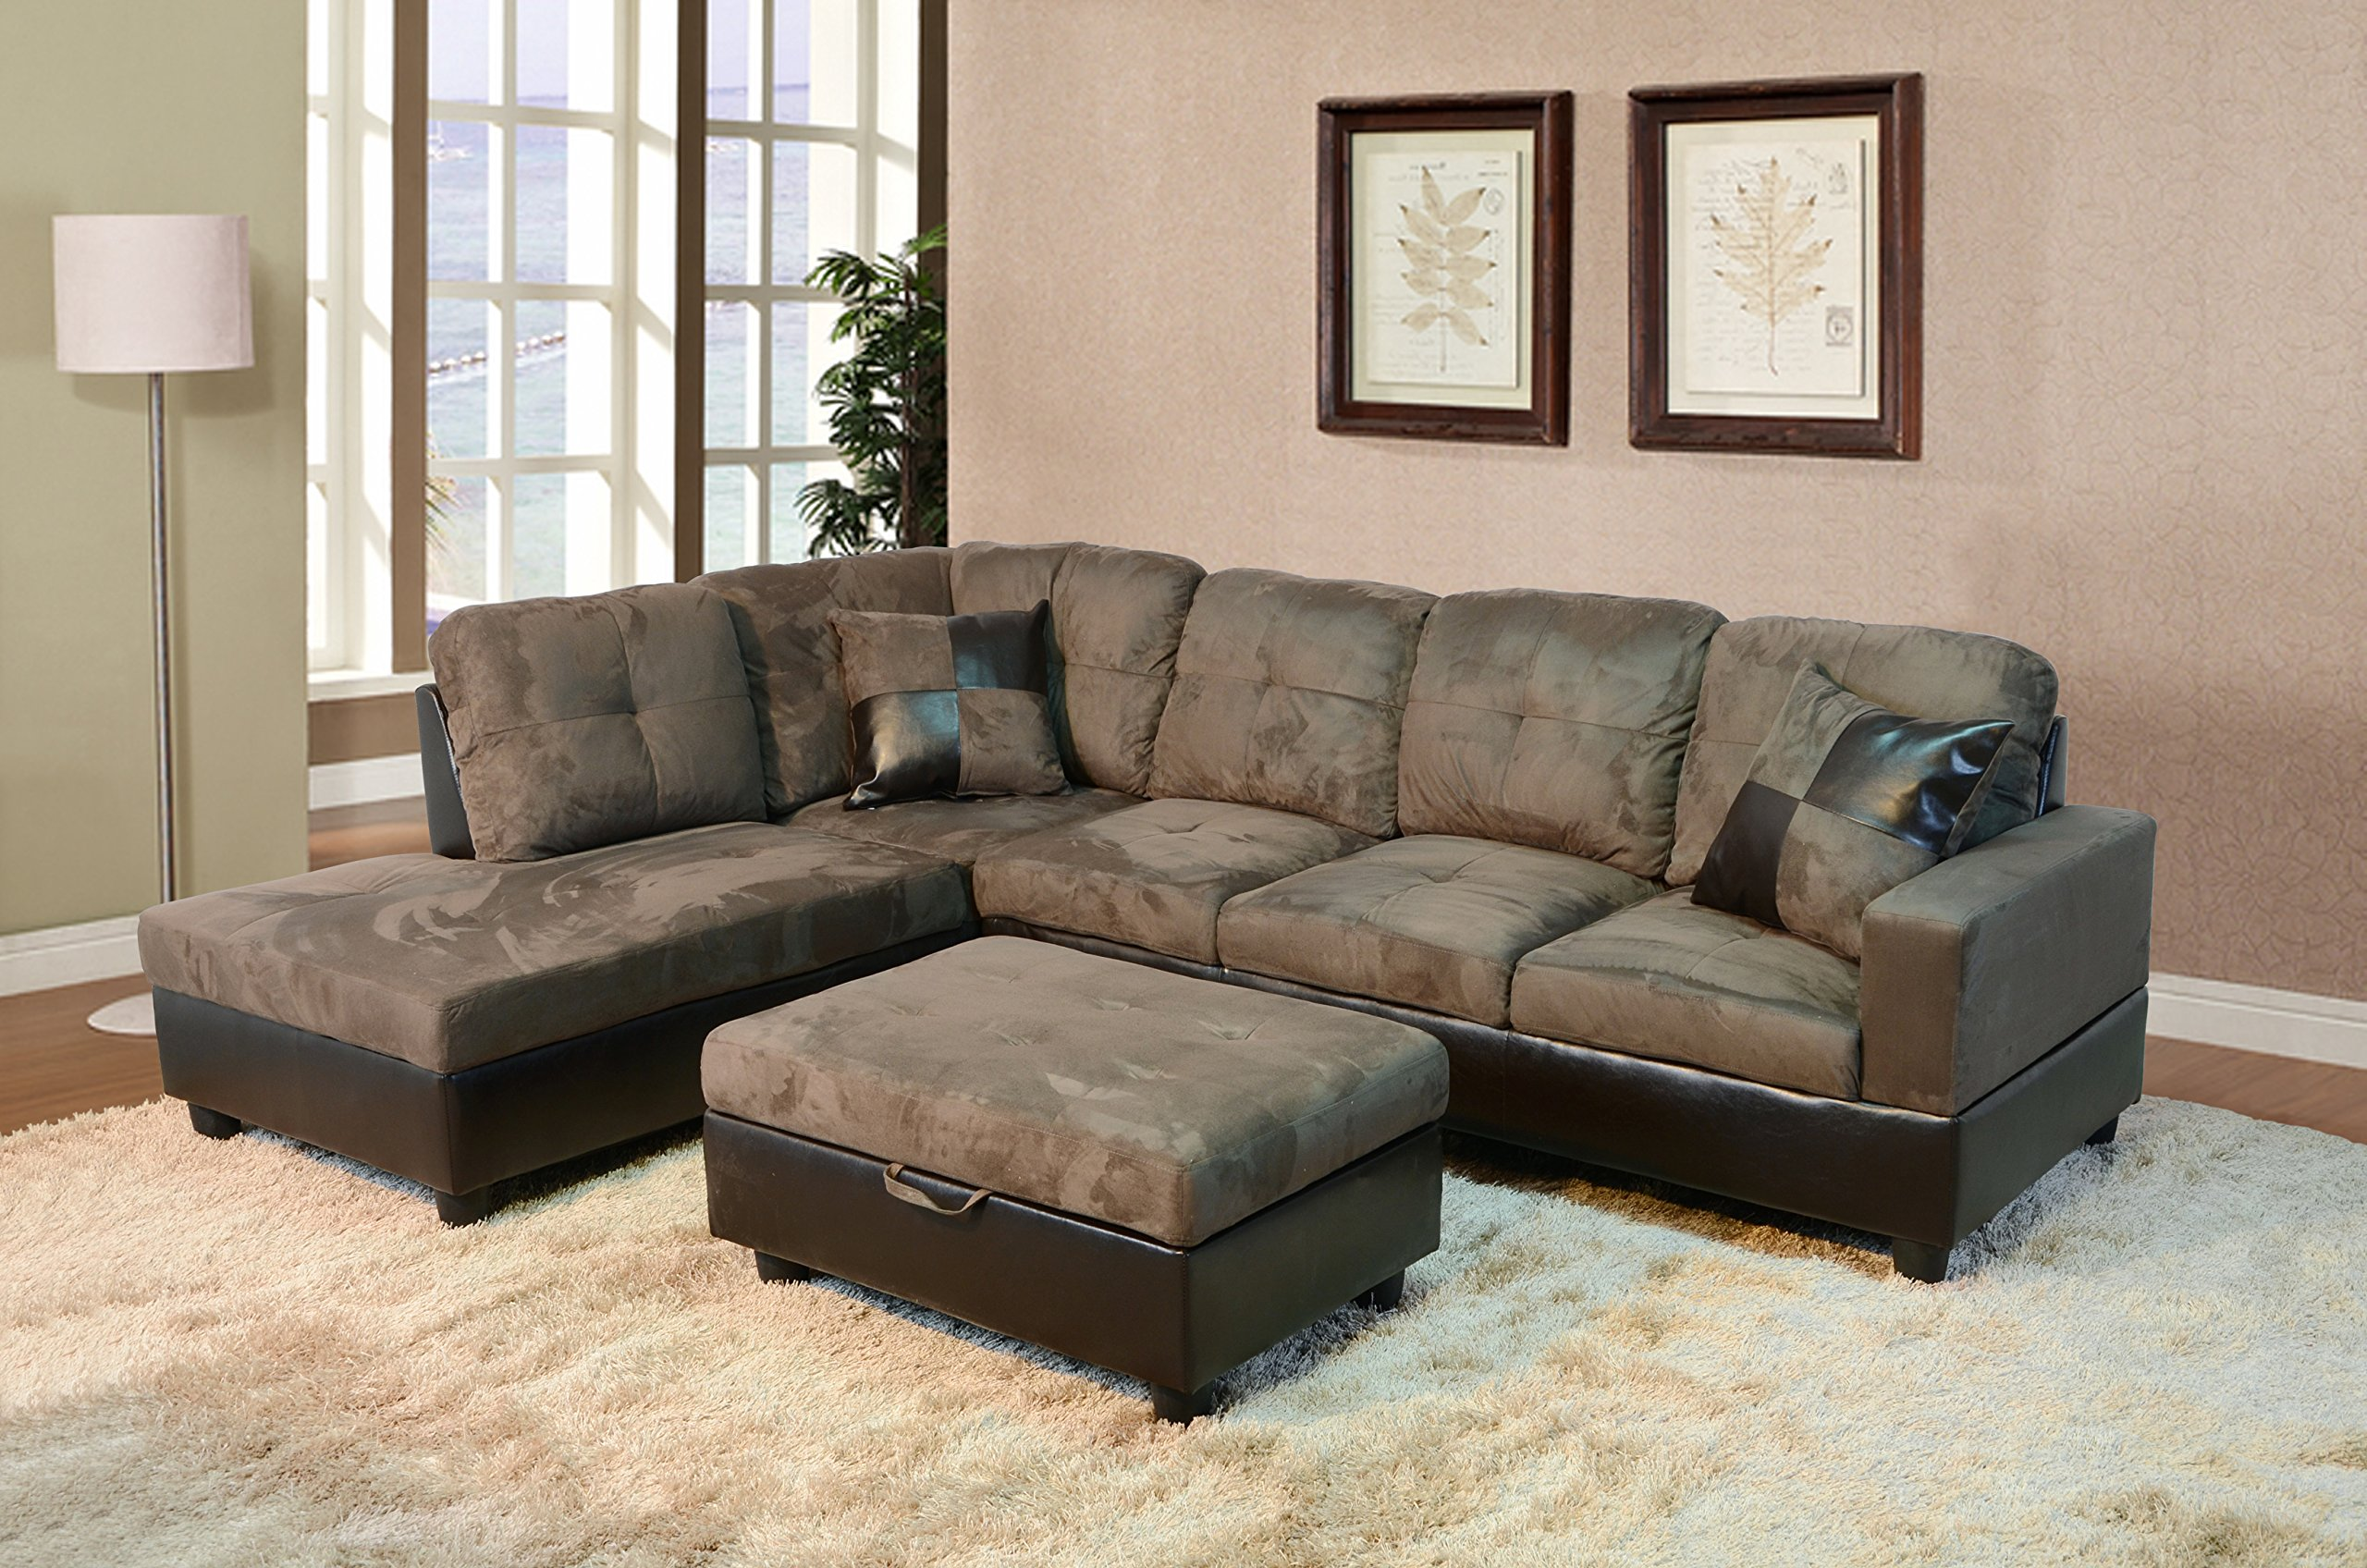 Galleon beverly furniture 3 piece microfiber and faux for Microfiber faux leather 3 piece sectional sofa set